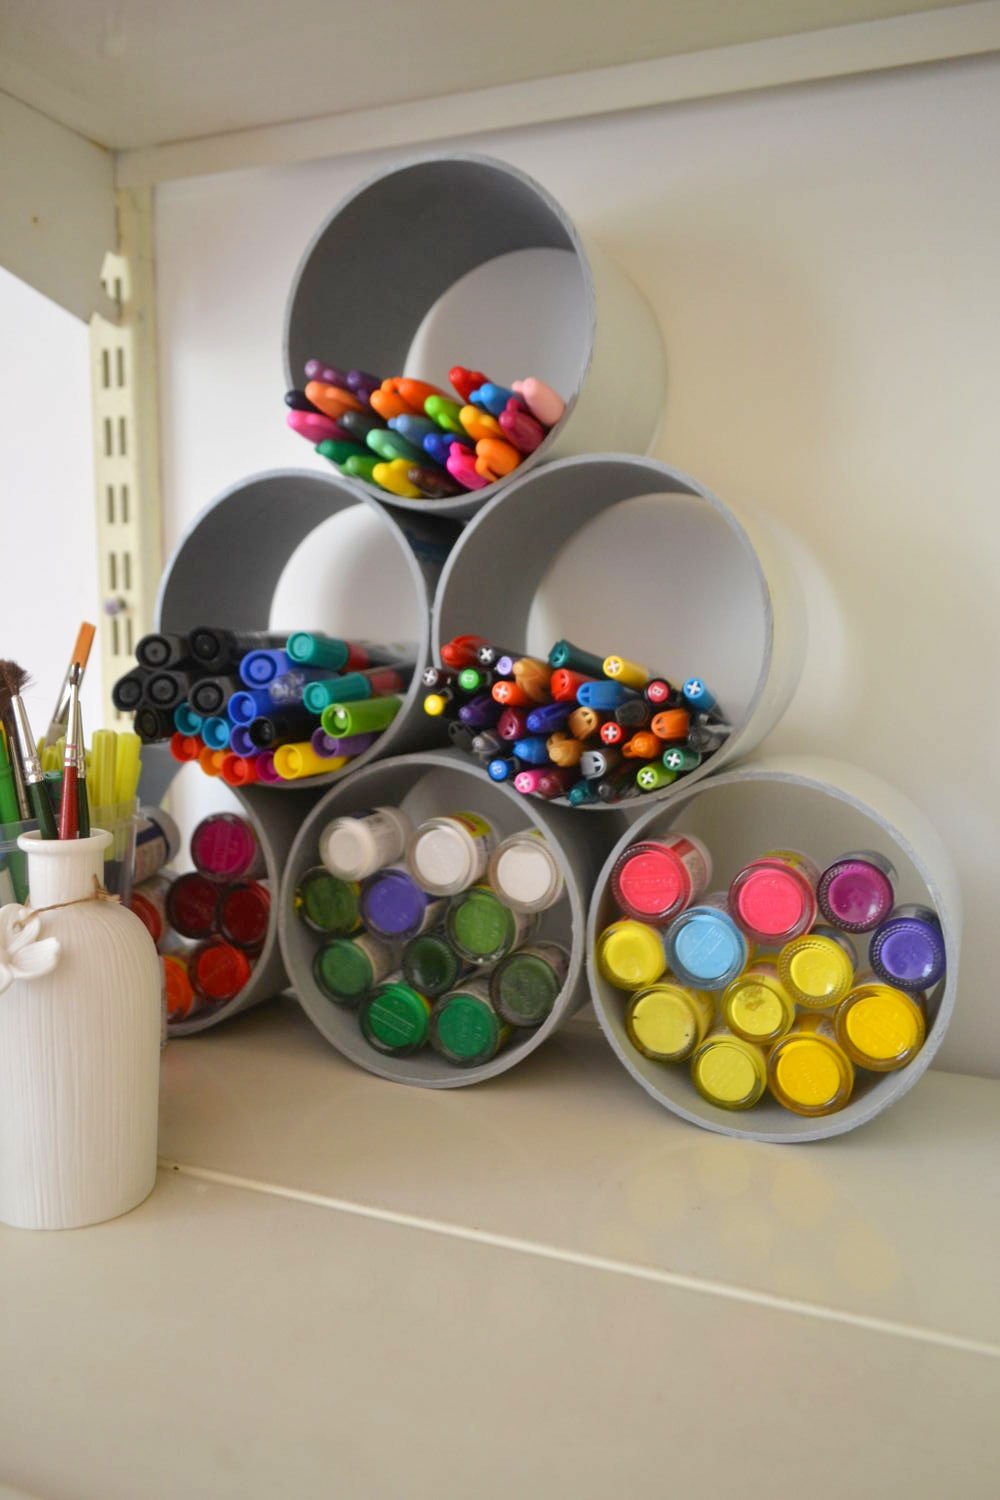 DIY – Pens and paints organizer